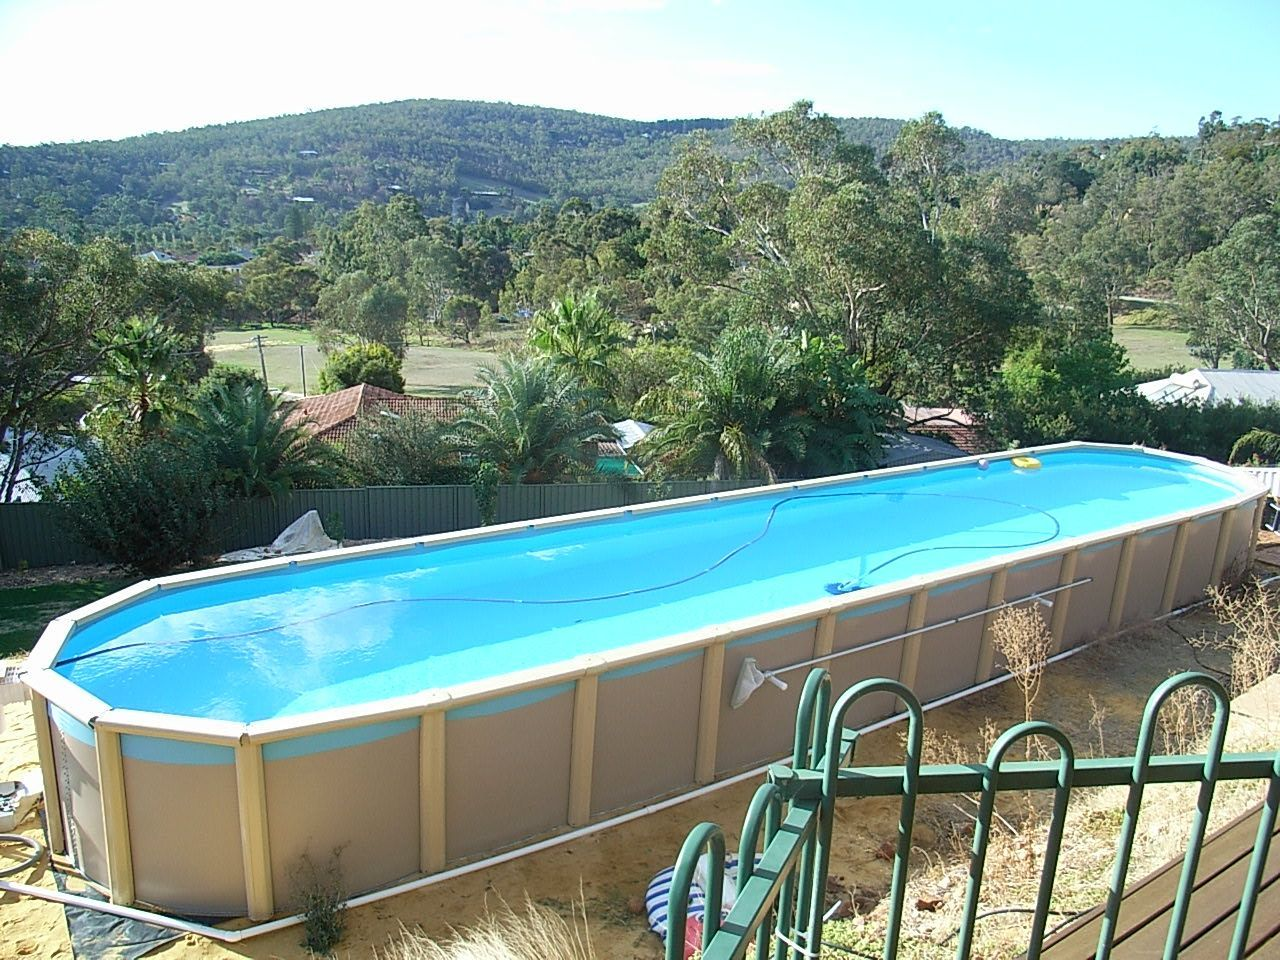 Sterns Above Ground Lap Pool Affordable Lap Pools Lap Pools Backyard Best Above Ground Pool Backyard Pool